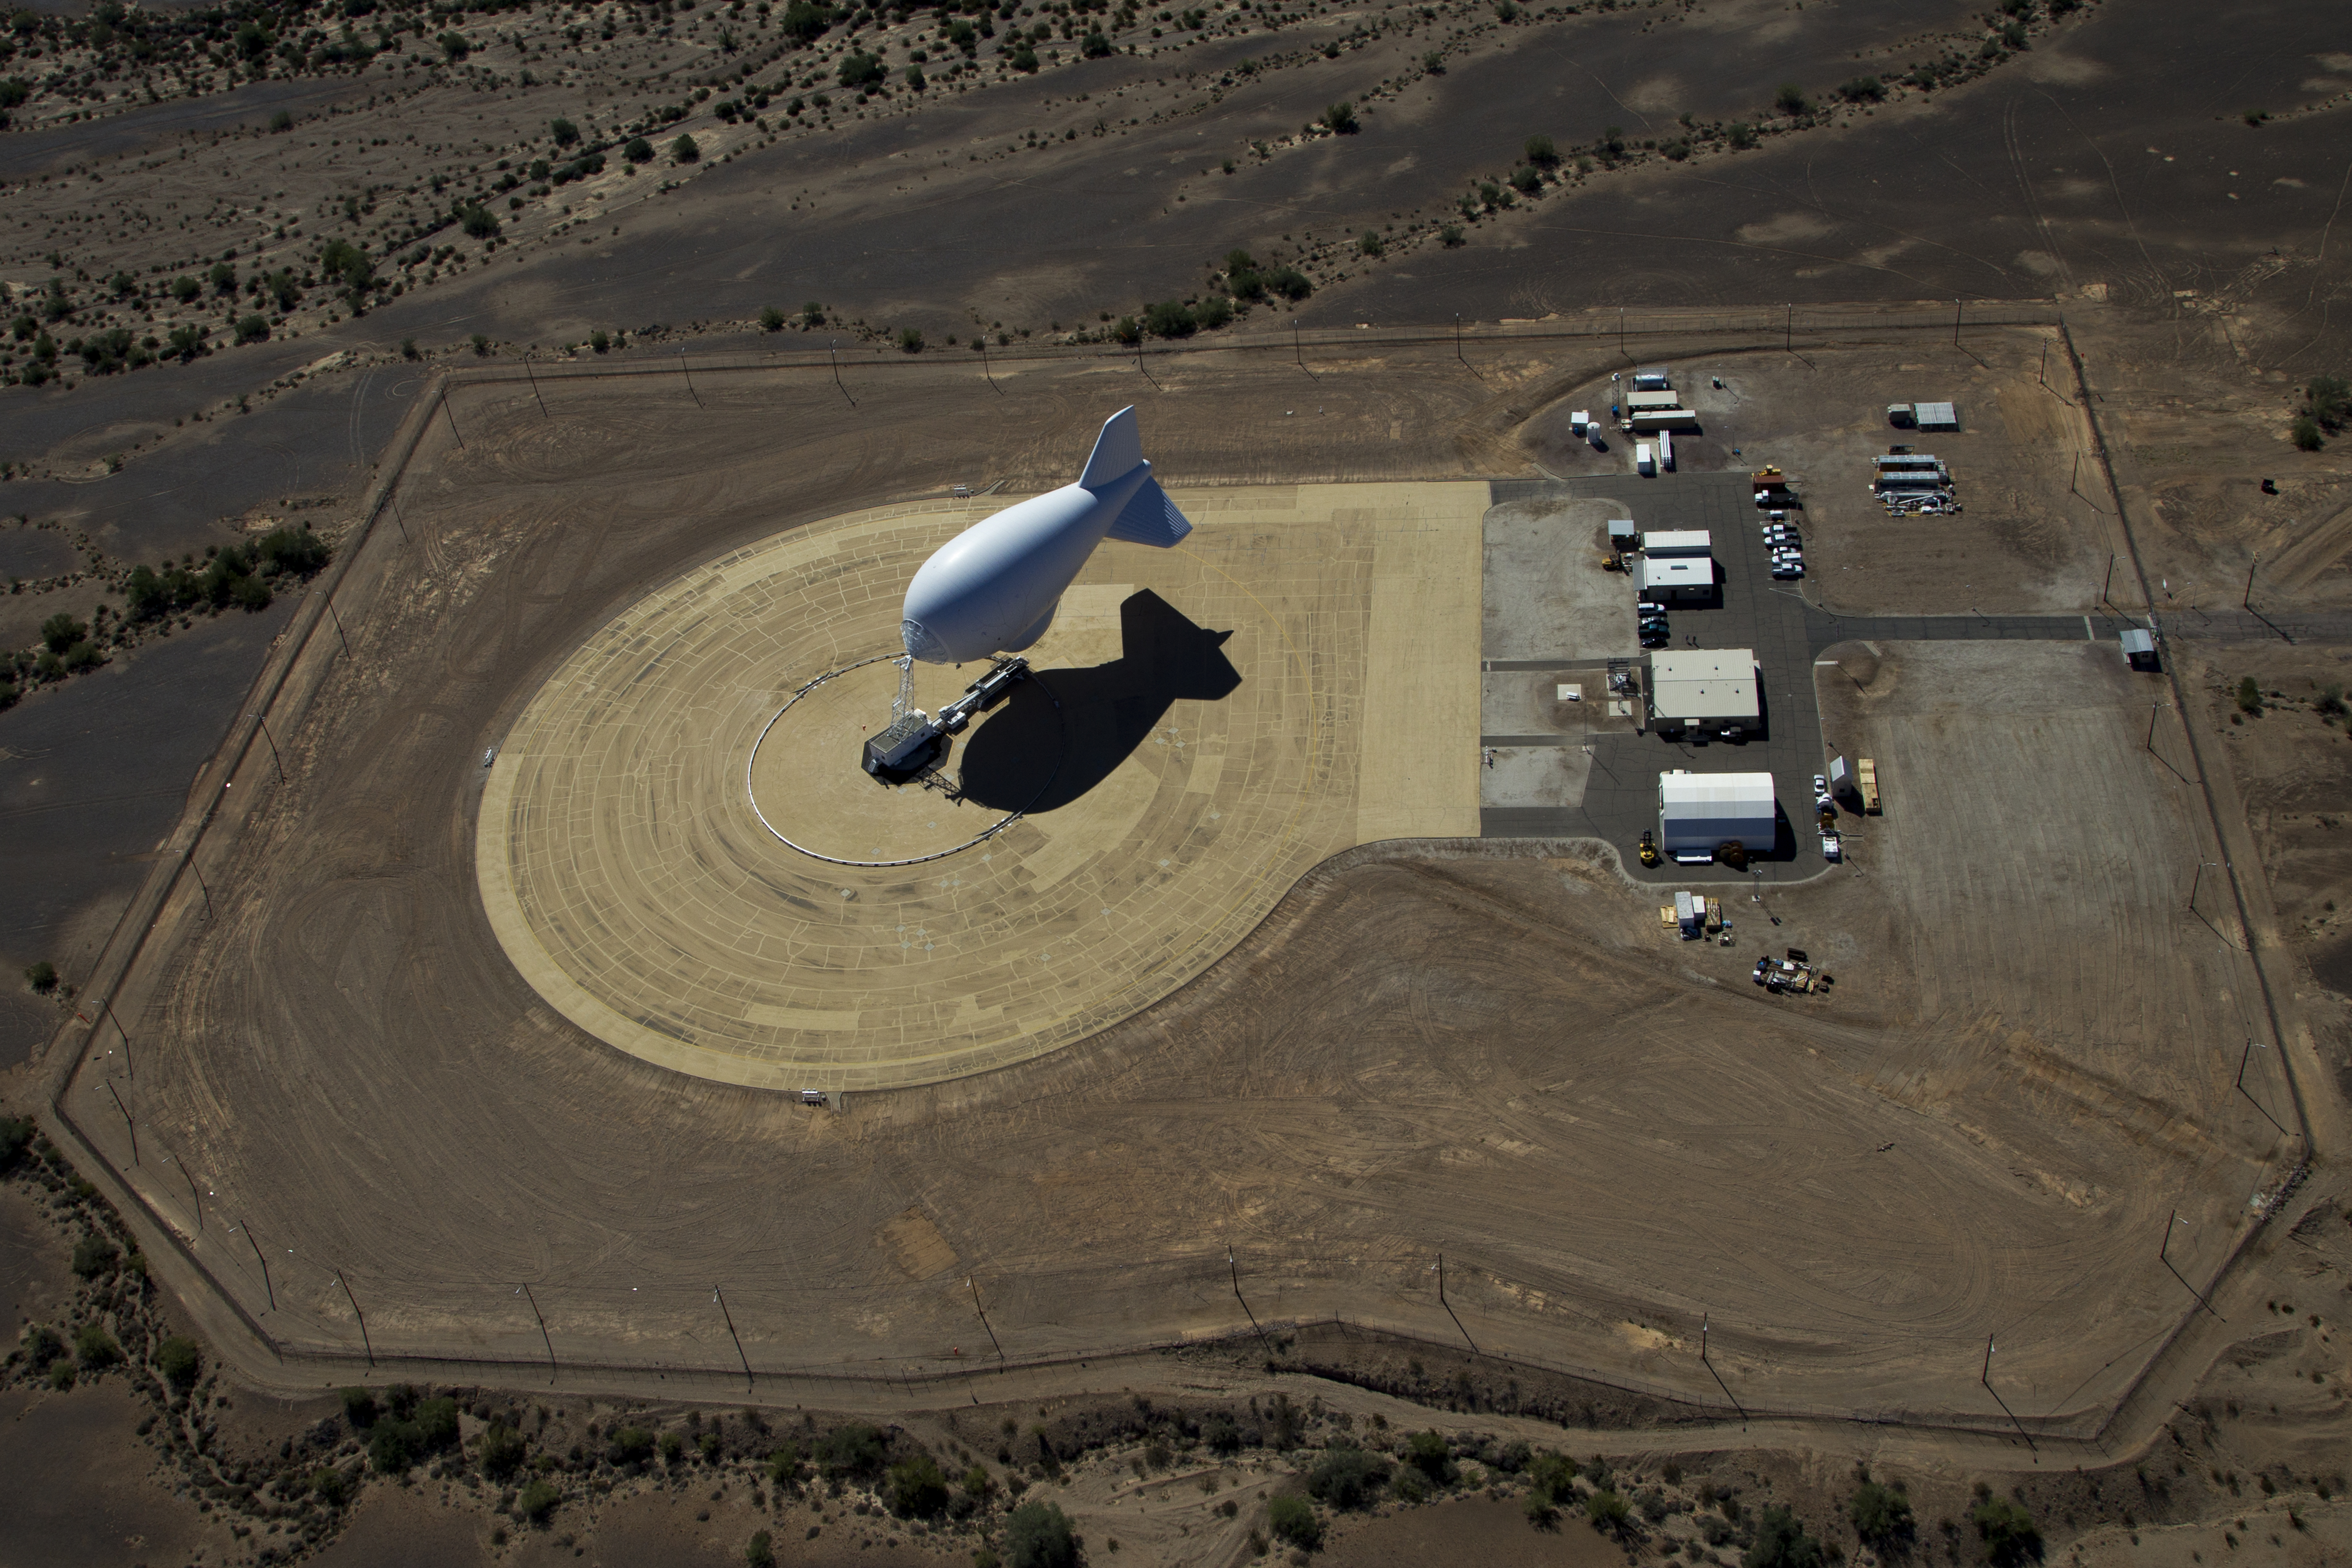 A blimp-shaped surveillance balloon is moored in an open space.